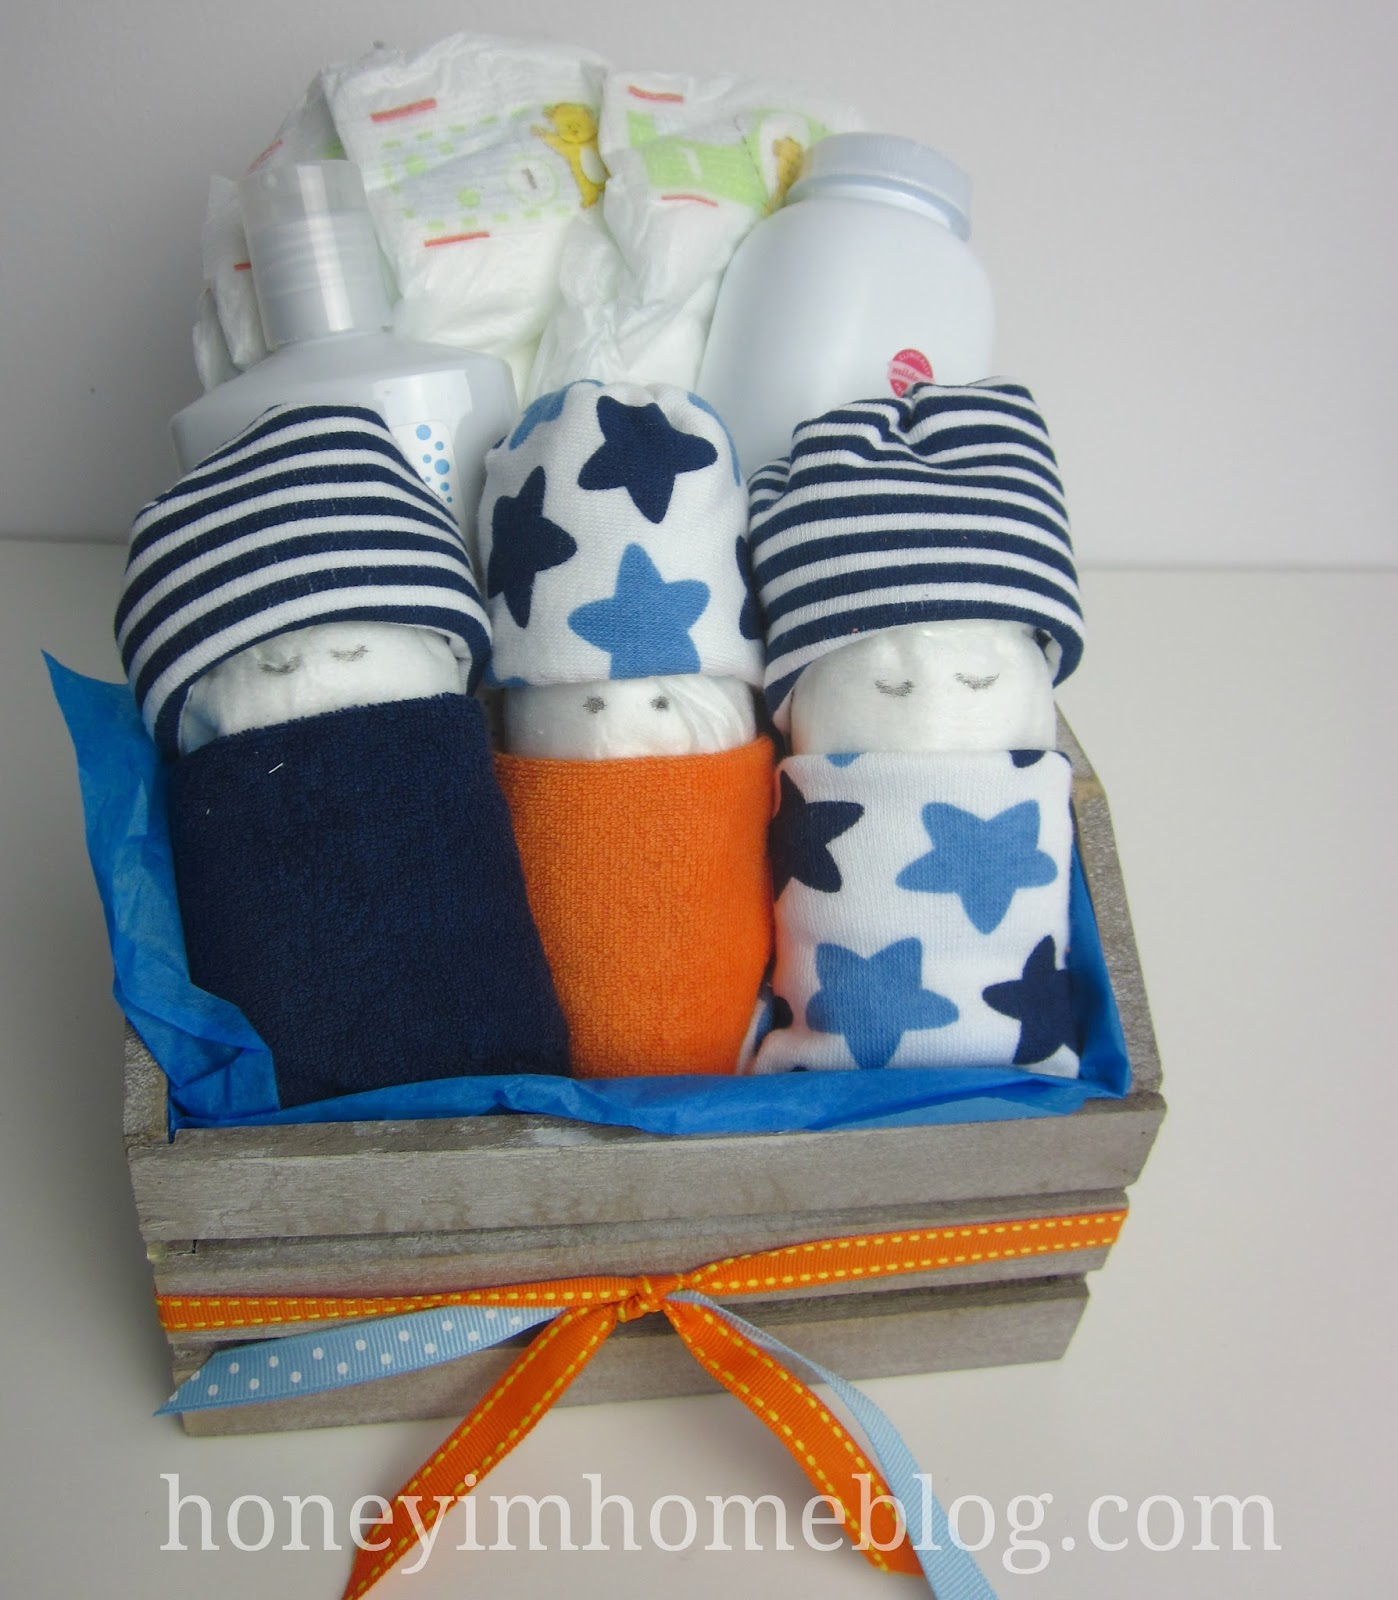 Honey I M Home Making Baby Gifts With Diapers On Studio 5